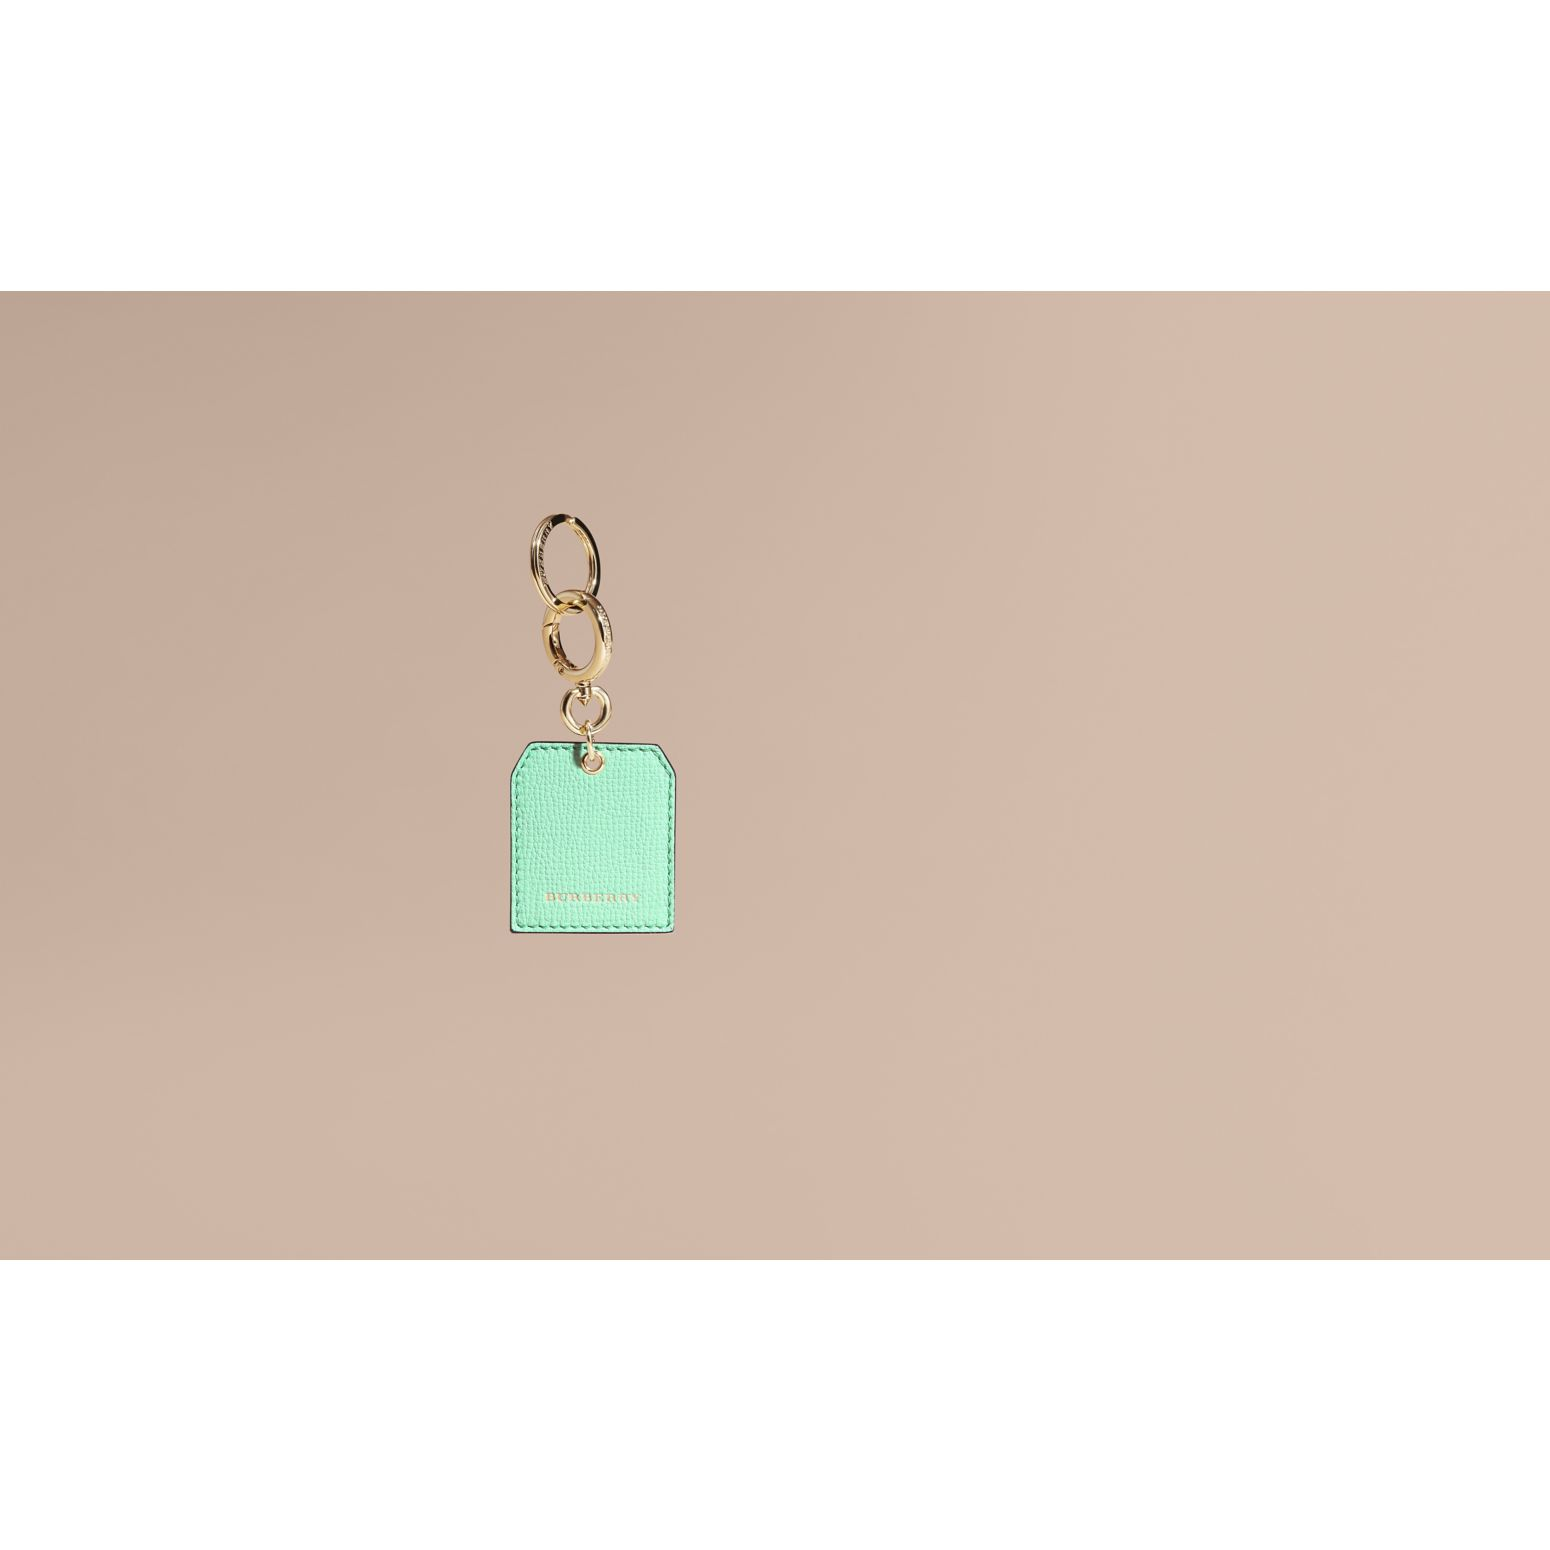 Grainy Leather Key Charm in Light Mint - Women | Burberry - gallery image 2